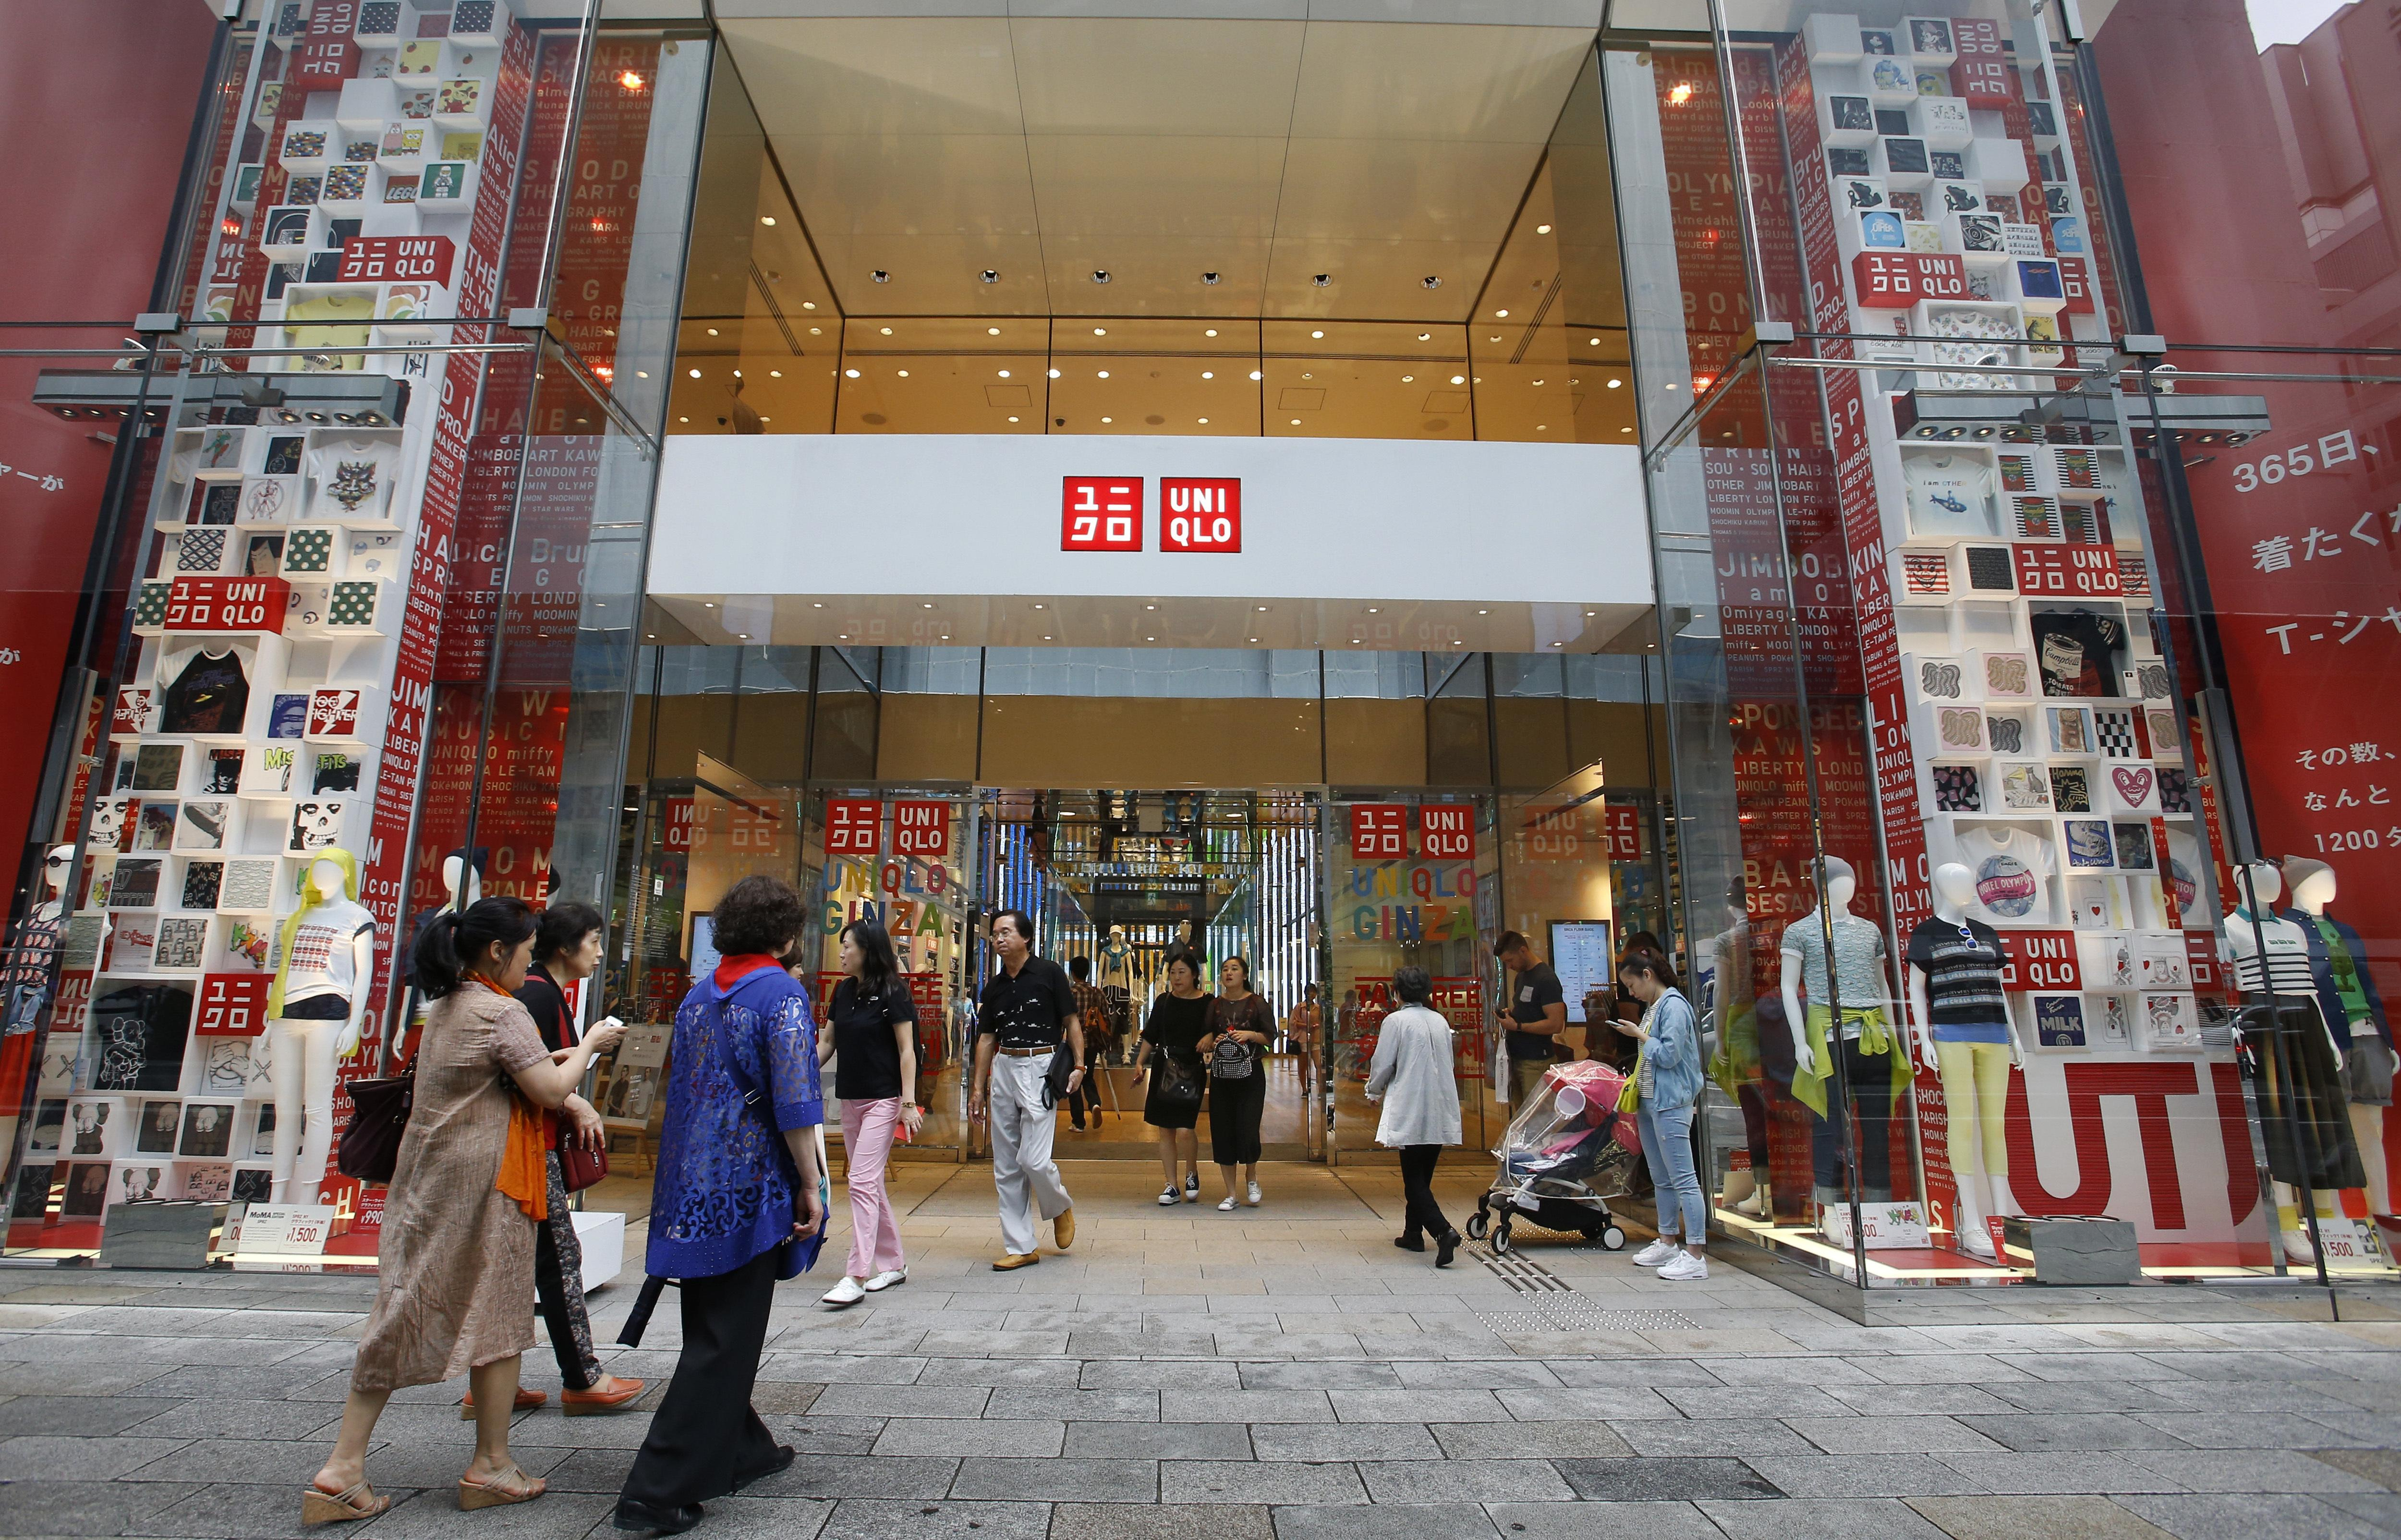 UNIQLO, Basic Made in Japan